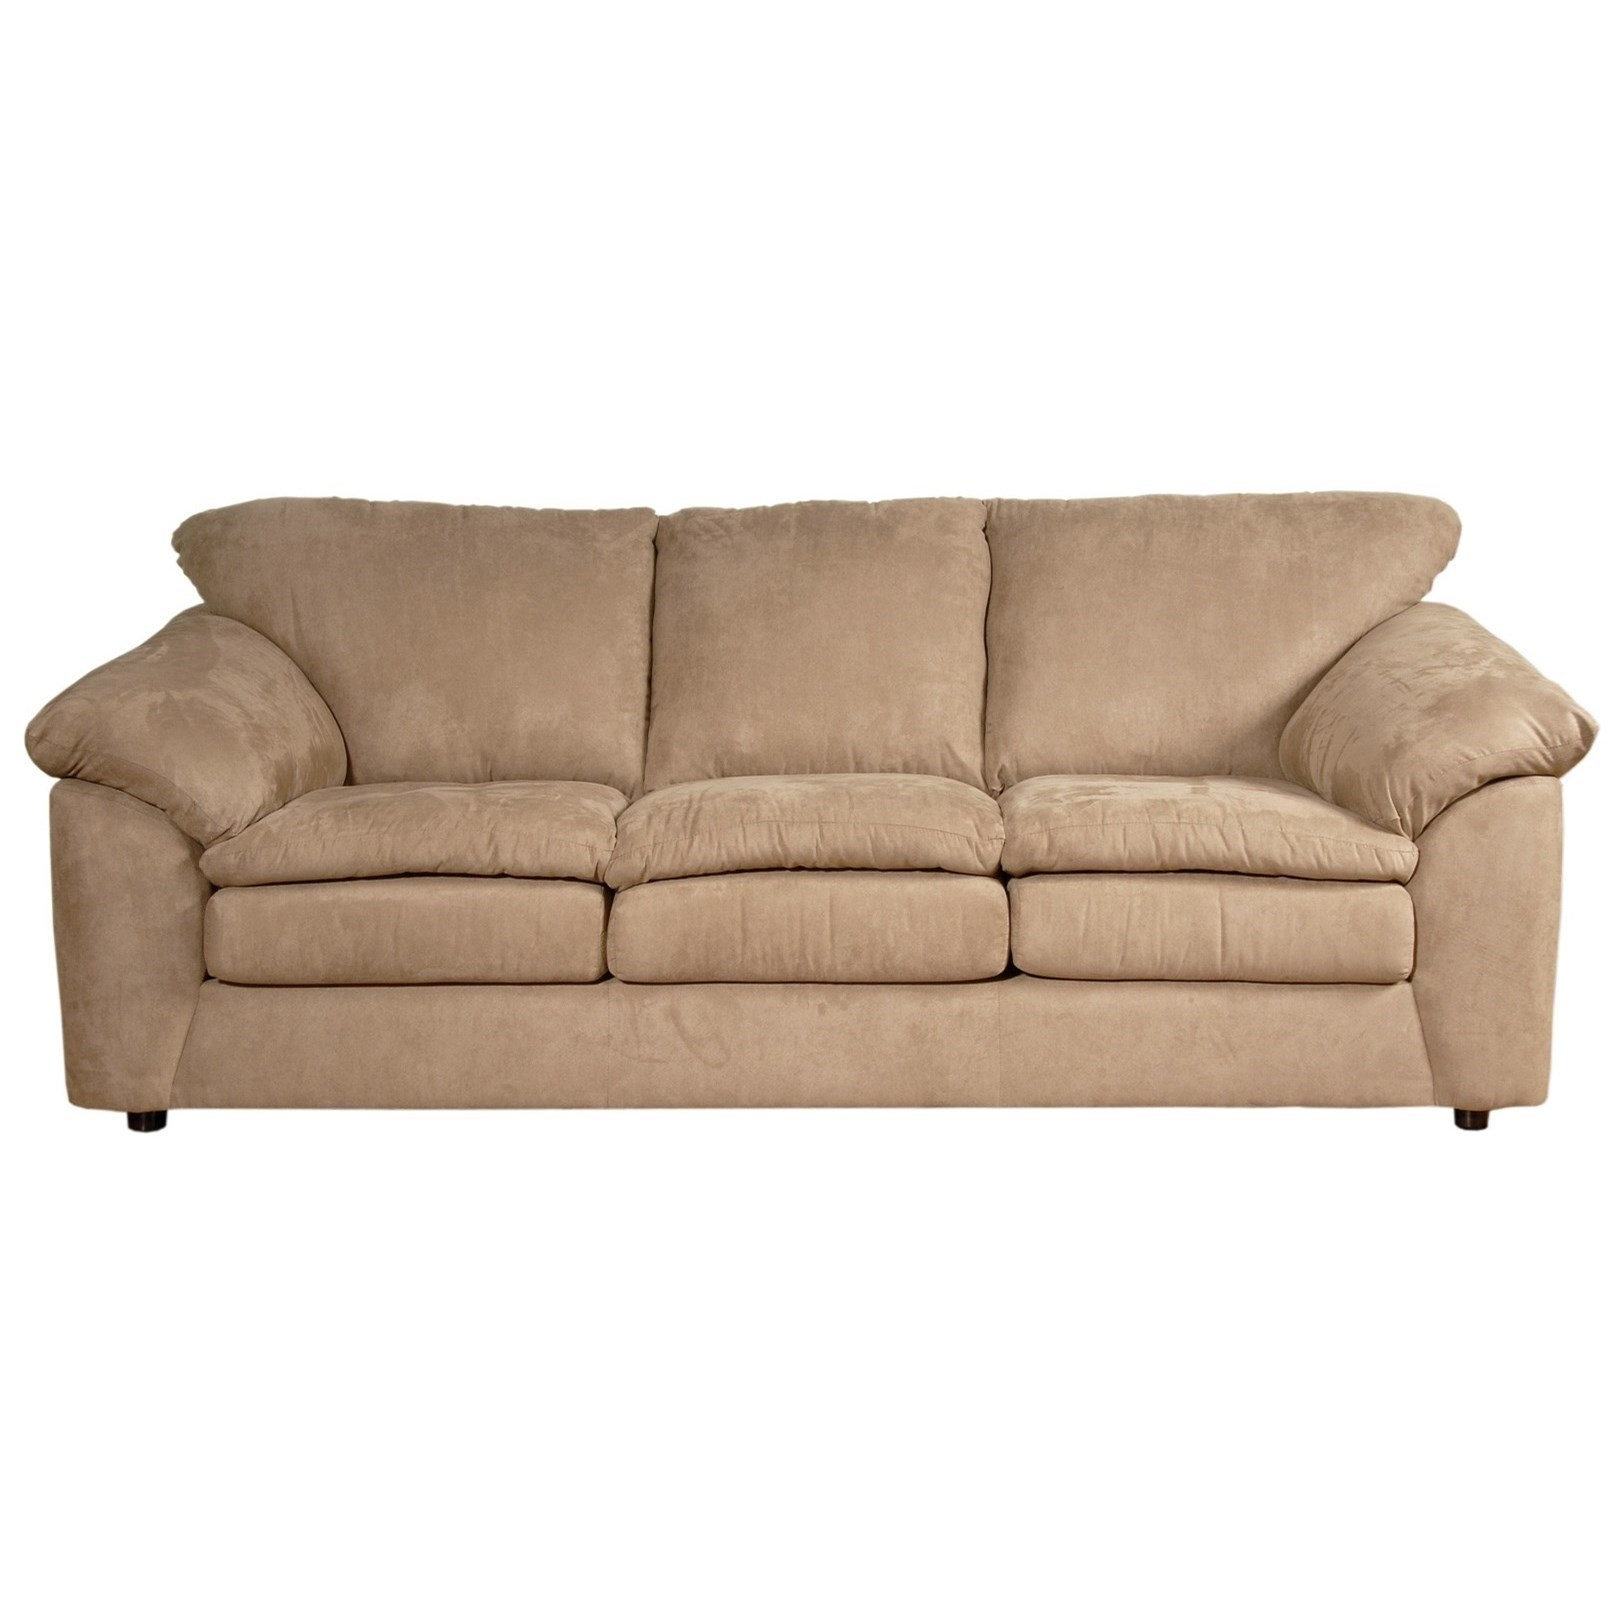 Serta Upholstery By Hughes Furniture 9000Casual Sofa ...